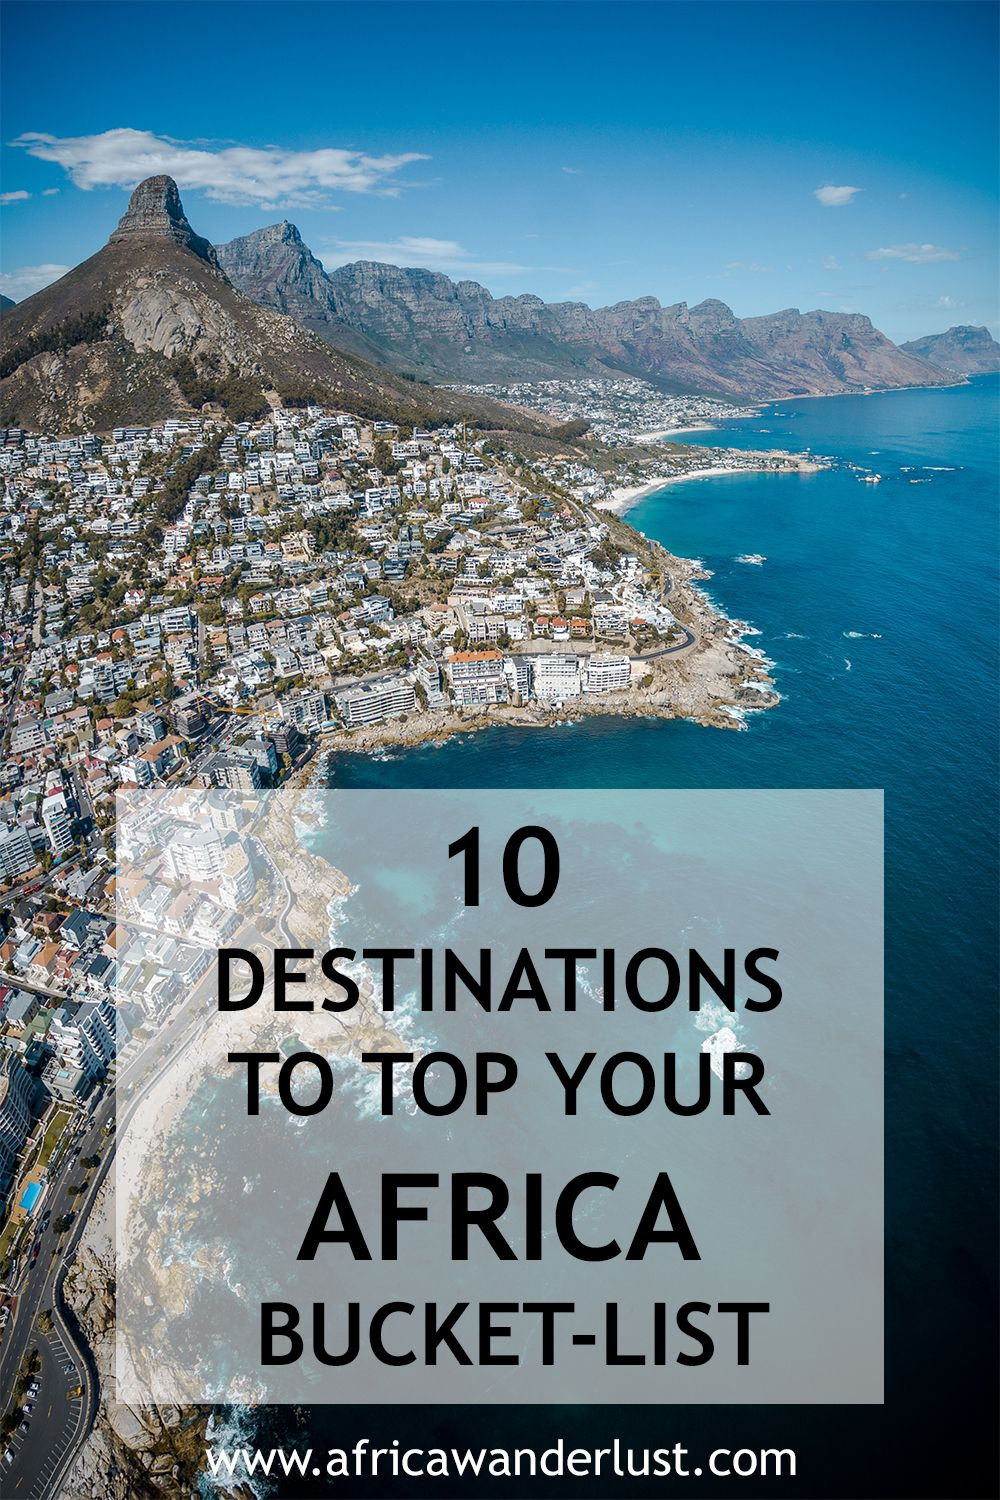 10 Destinations to Top Your Africa Bucket-List -   19 travel destinations Thailand country ideas